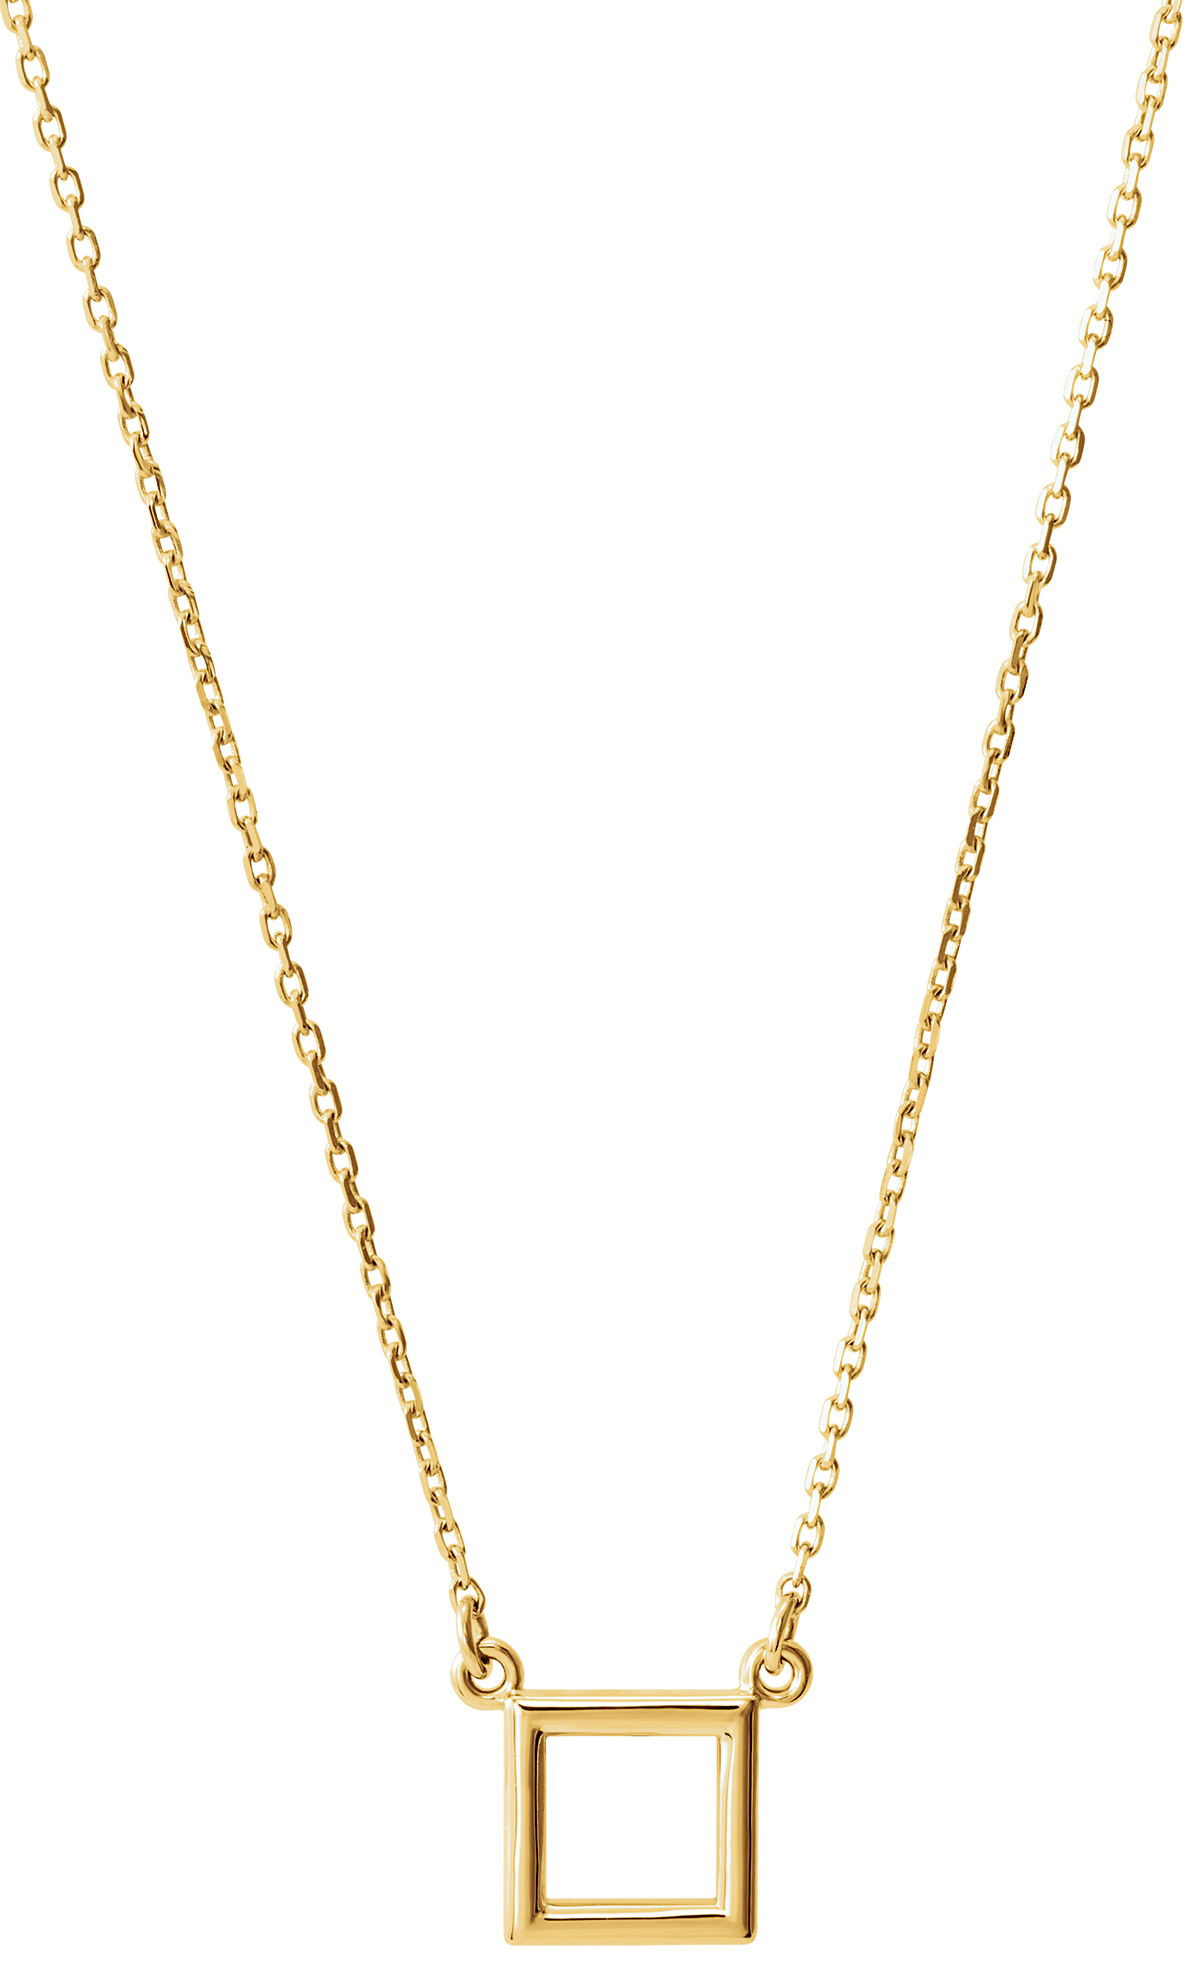 Stuller open square necklace | JCK On Your Market